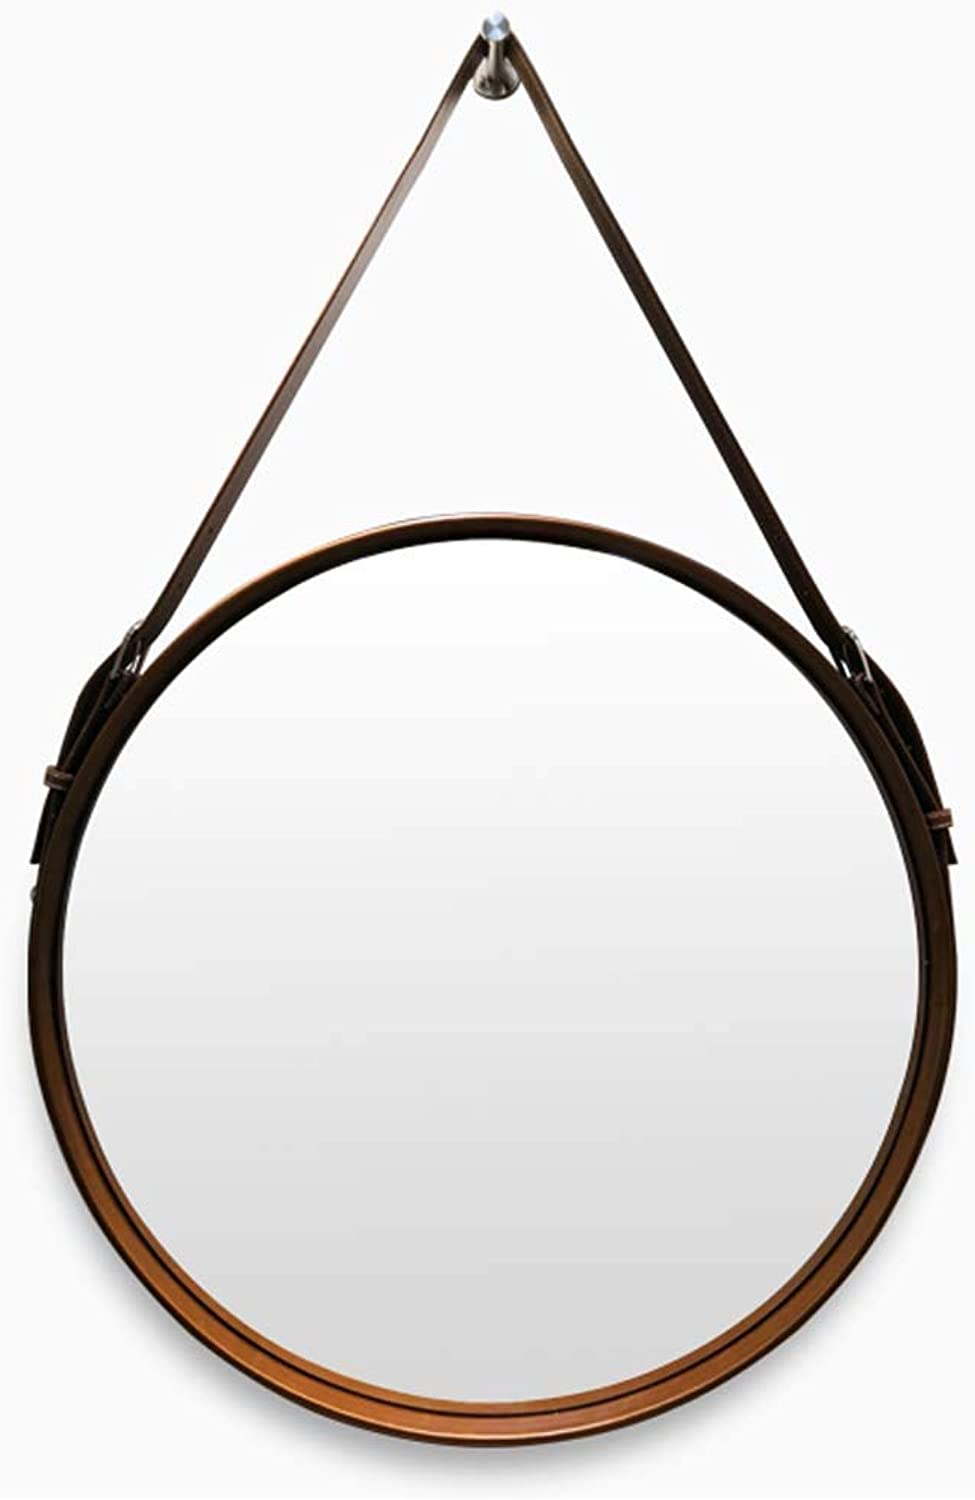 Decorative Mirrors Leather Round Wall Mirror Diameter 20-28 Inch Vanity Makeup Mirror with Hanging Strap Silver Hardware Hook(Dark Brown)